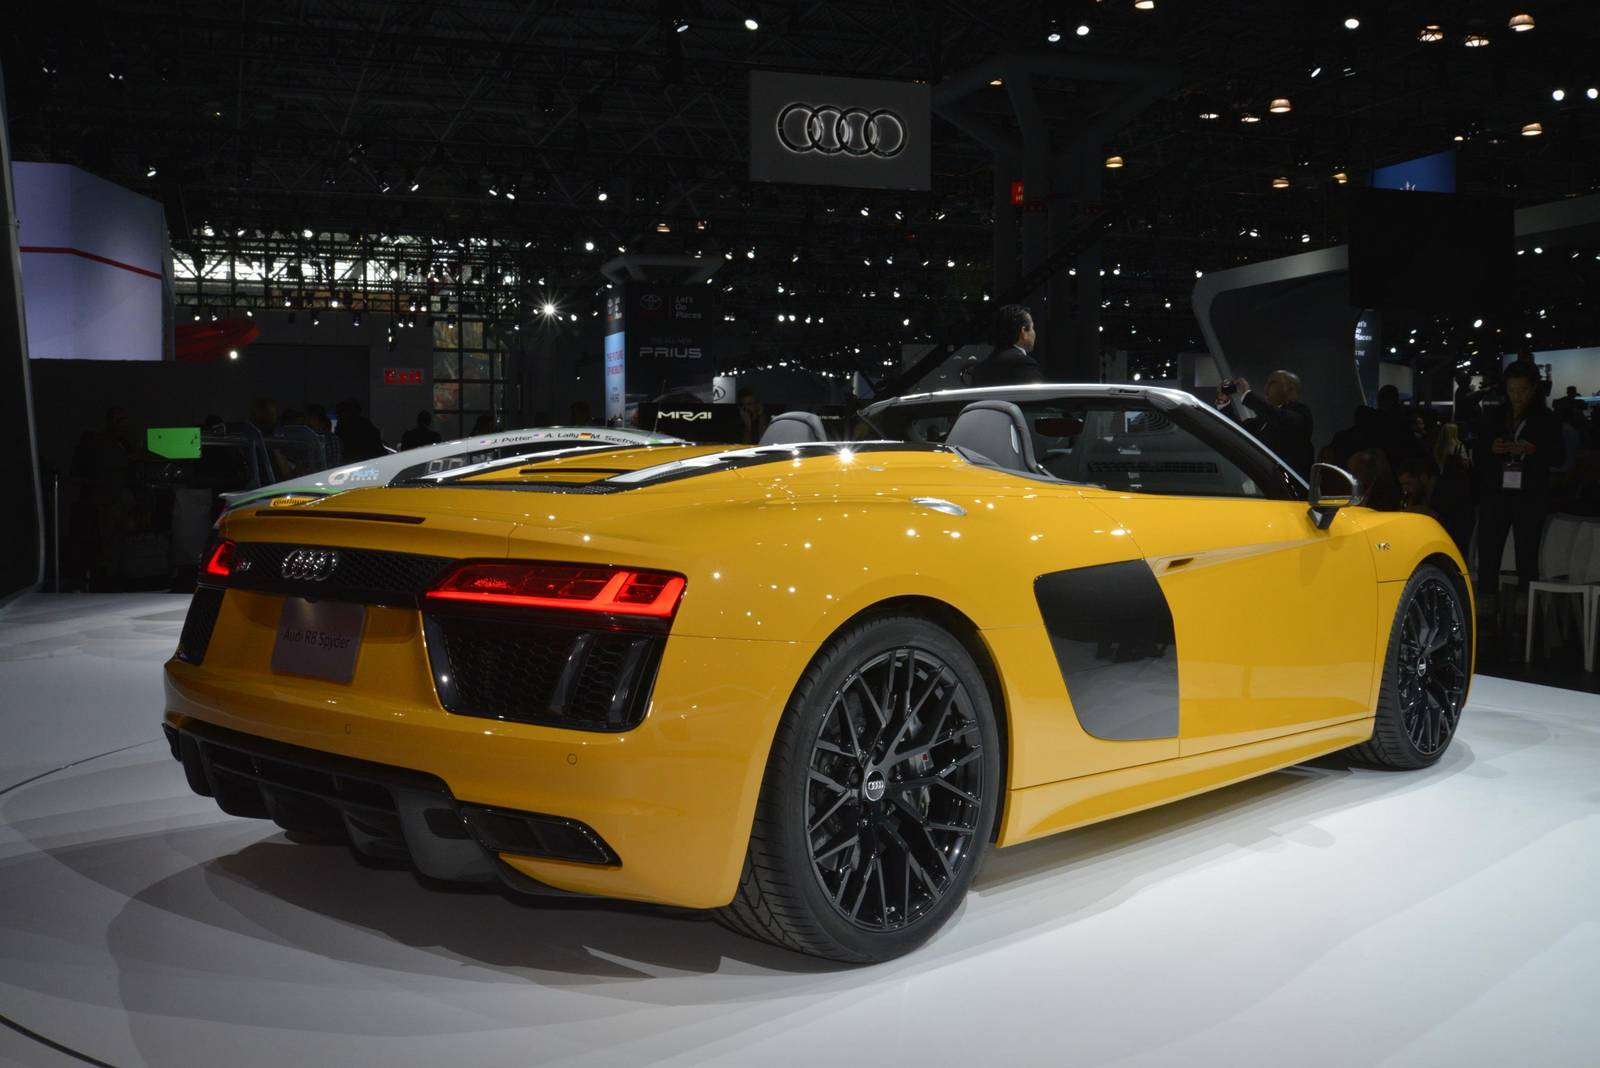 New York 2016: Audi R8 Spyder - GTspirit